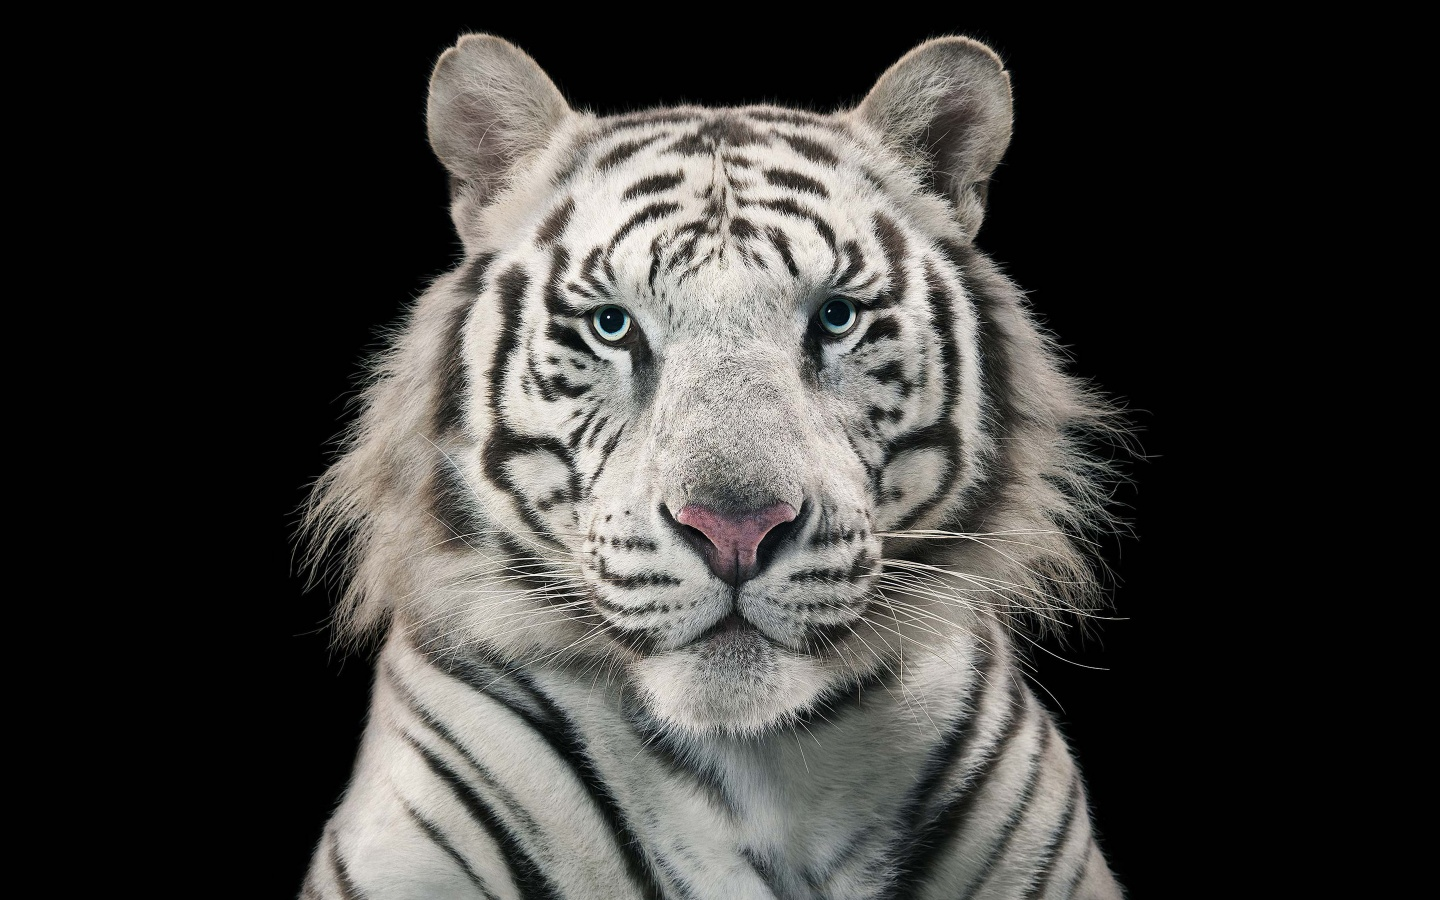 3d Wallpaper Singapore White Tiger Bengal Tiger Wallpapers In Jpg Format For Free